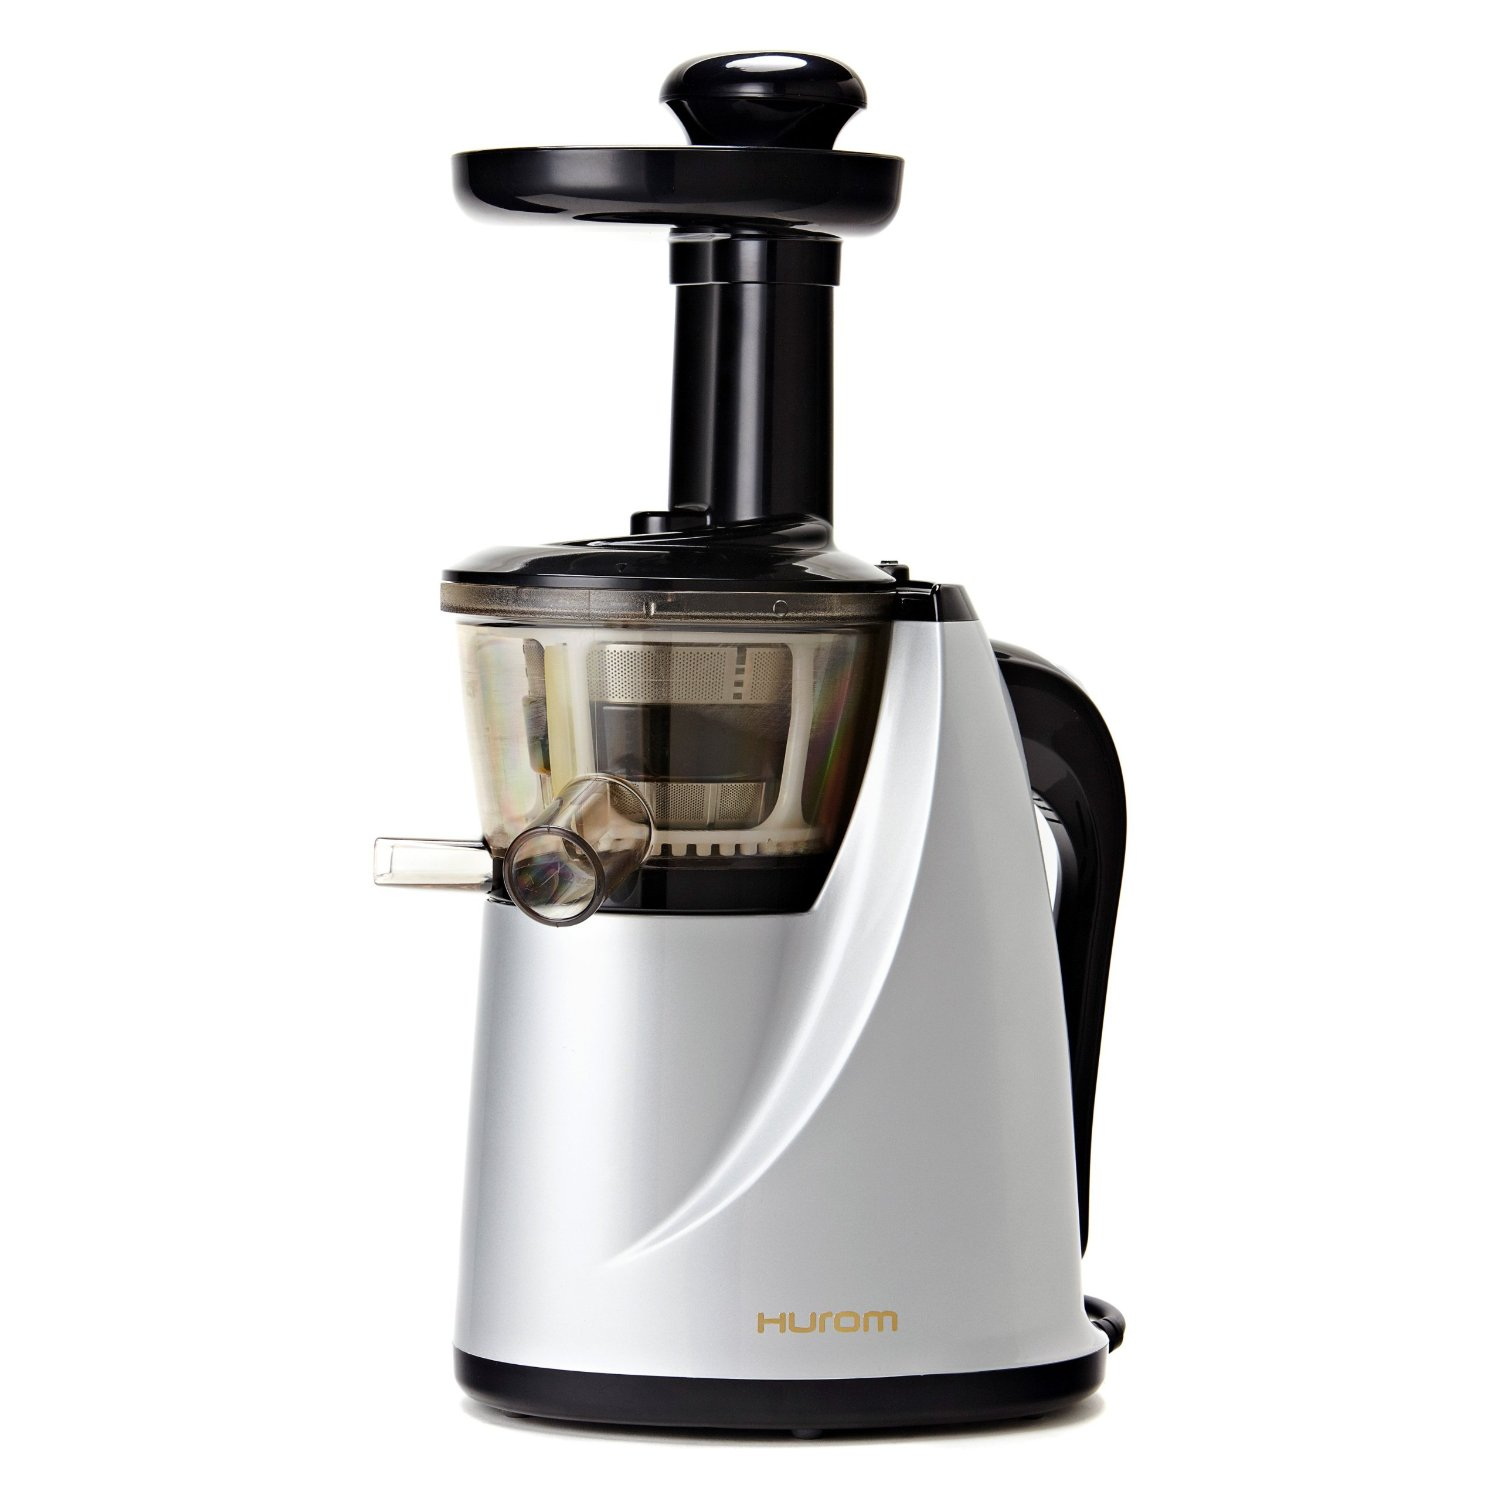 Hurom Juicer Omega Vsj843qs : Hurom HU-100 Masticating Slow Juicer Review - Best Cold Press Juicers